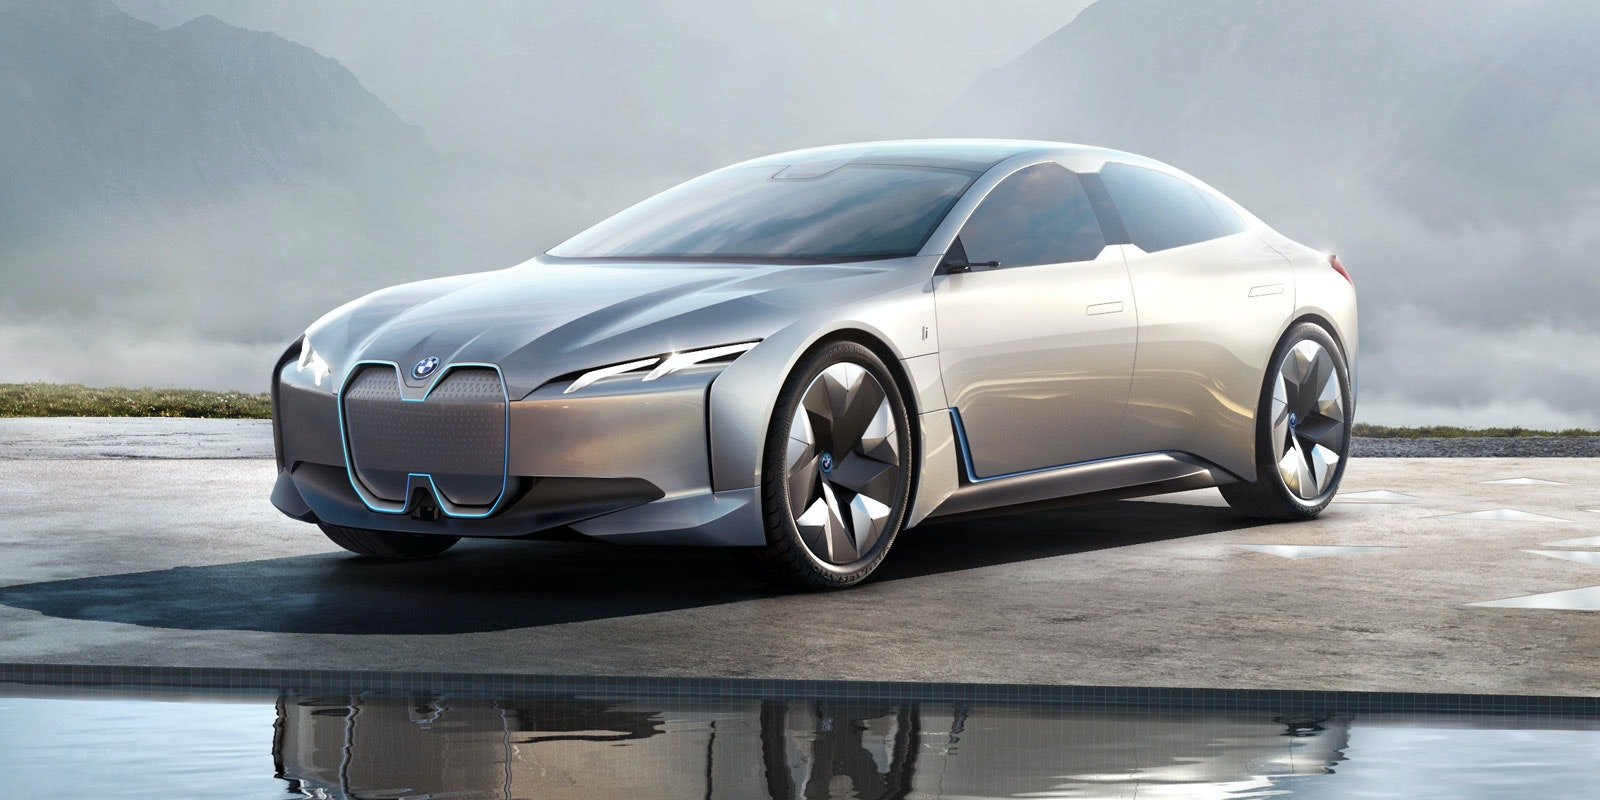 Bmw i vision dynamics concept parked front lead 1.jpg?ixlib=rb 1.1